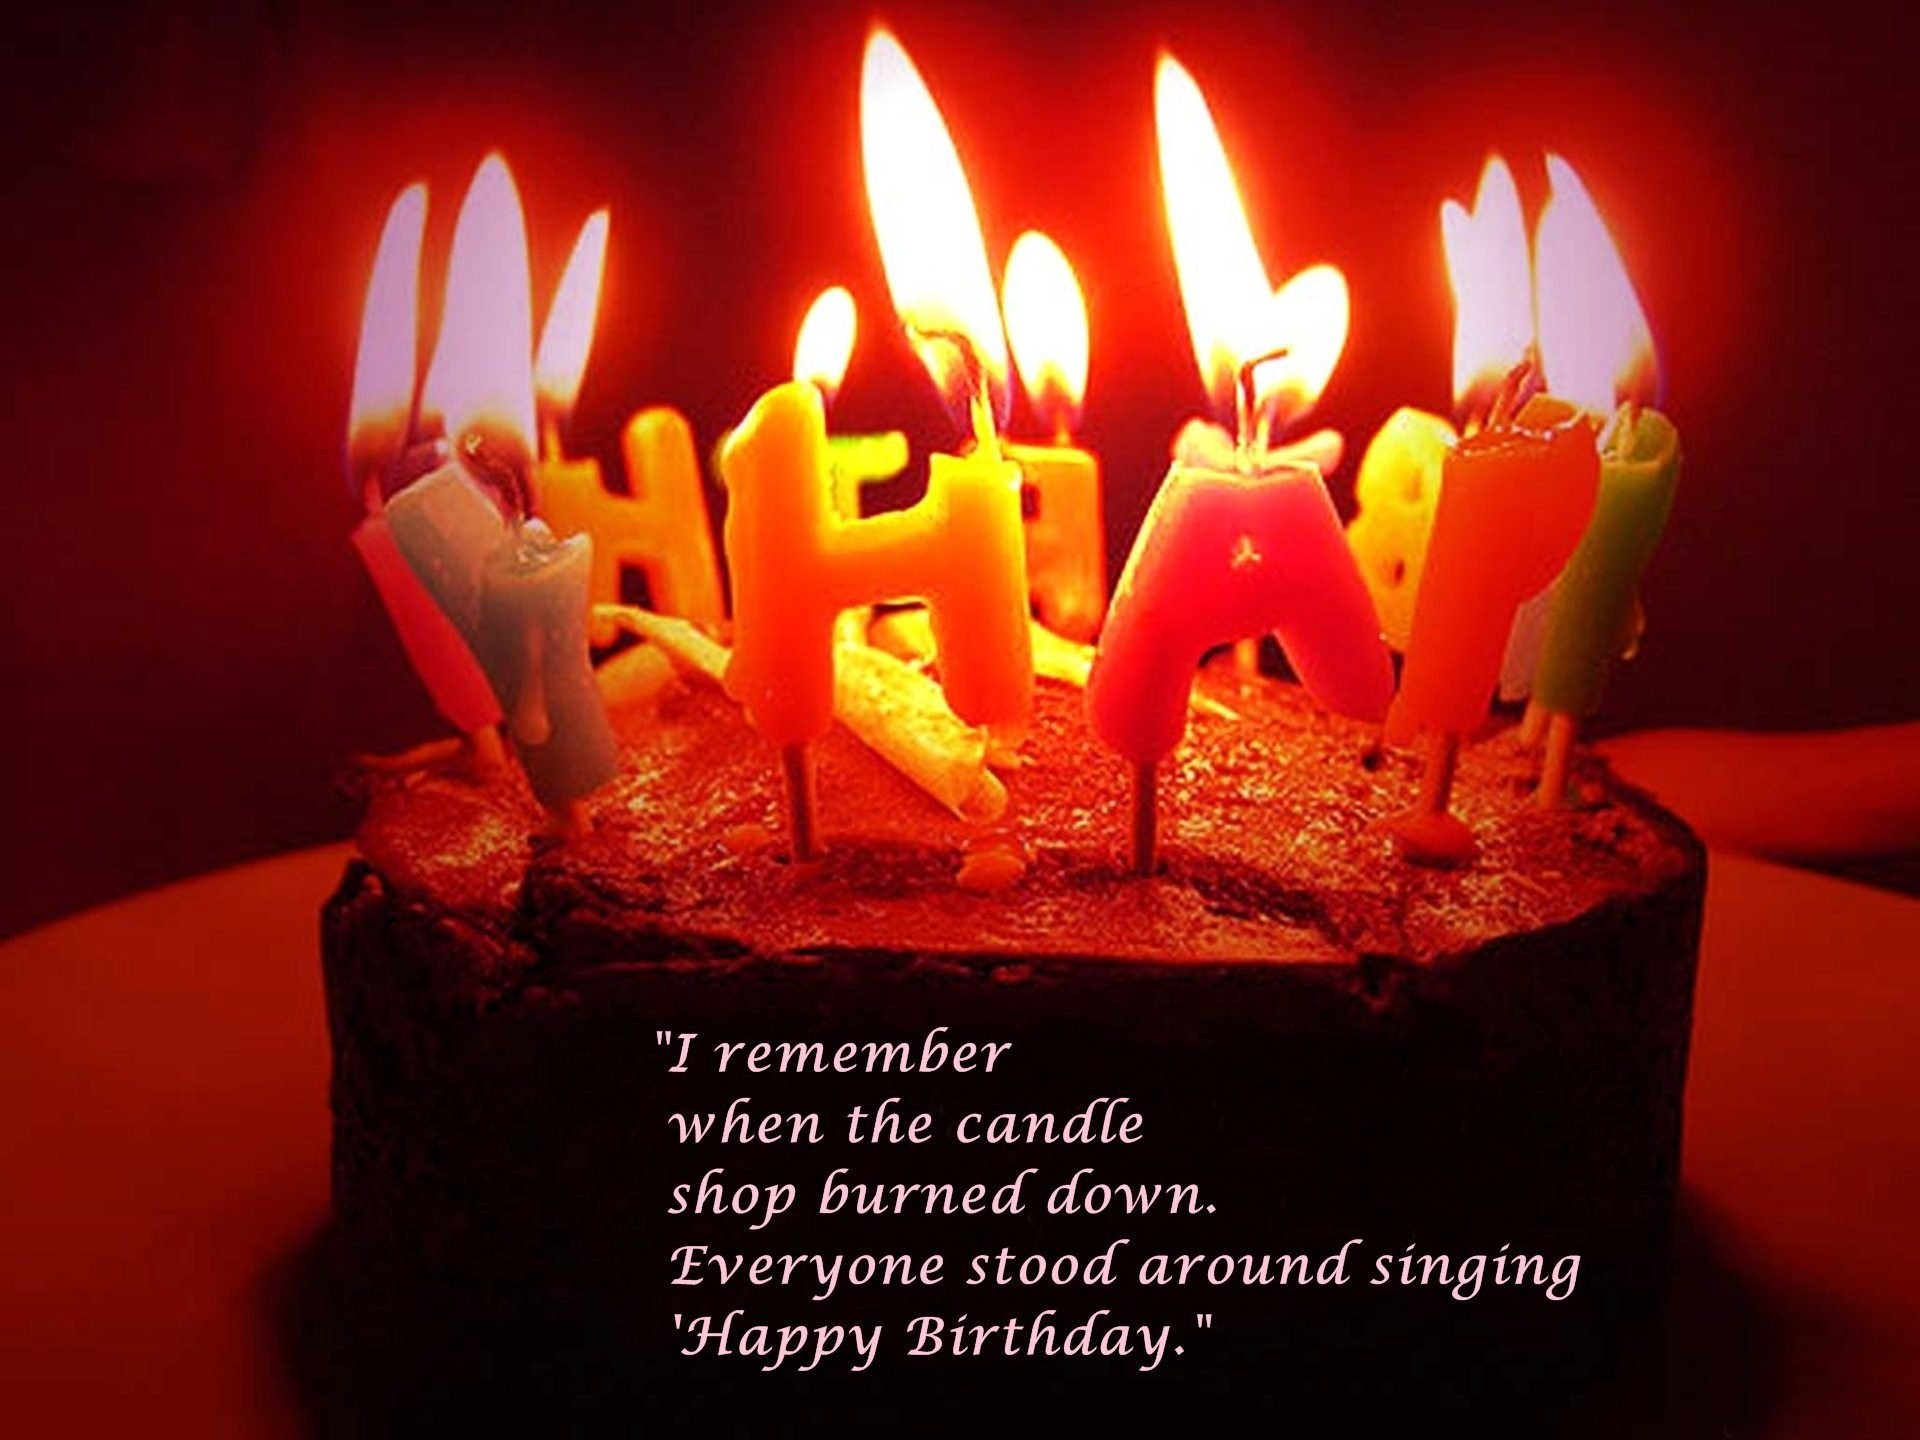 download happy birthday images hd ; Happy-BirtHDay-Quotes-HD-Wallpaper-00276